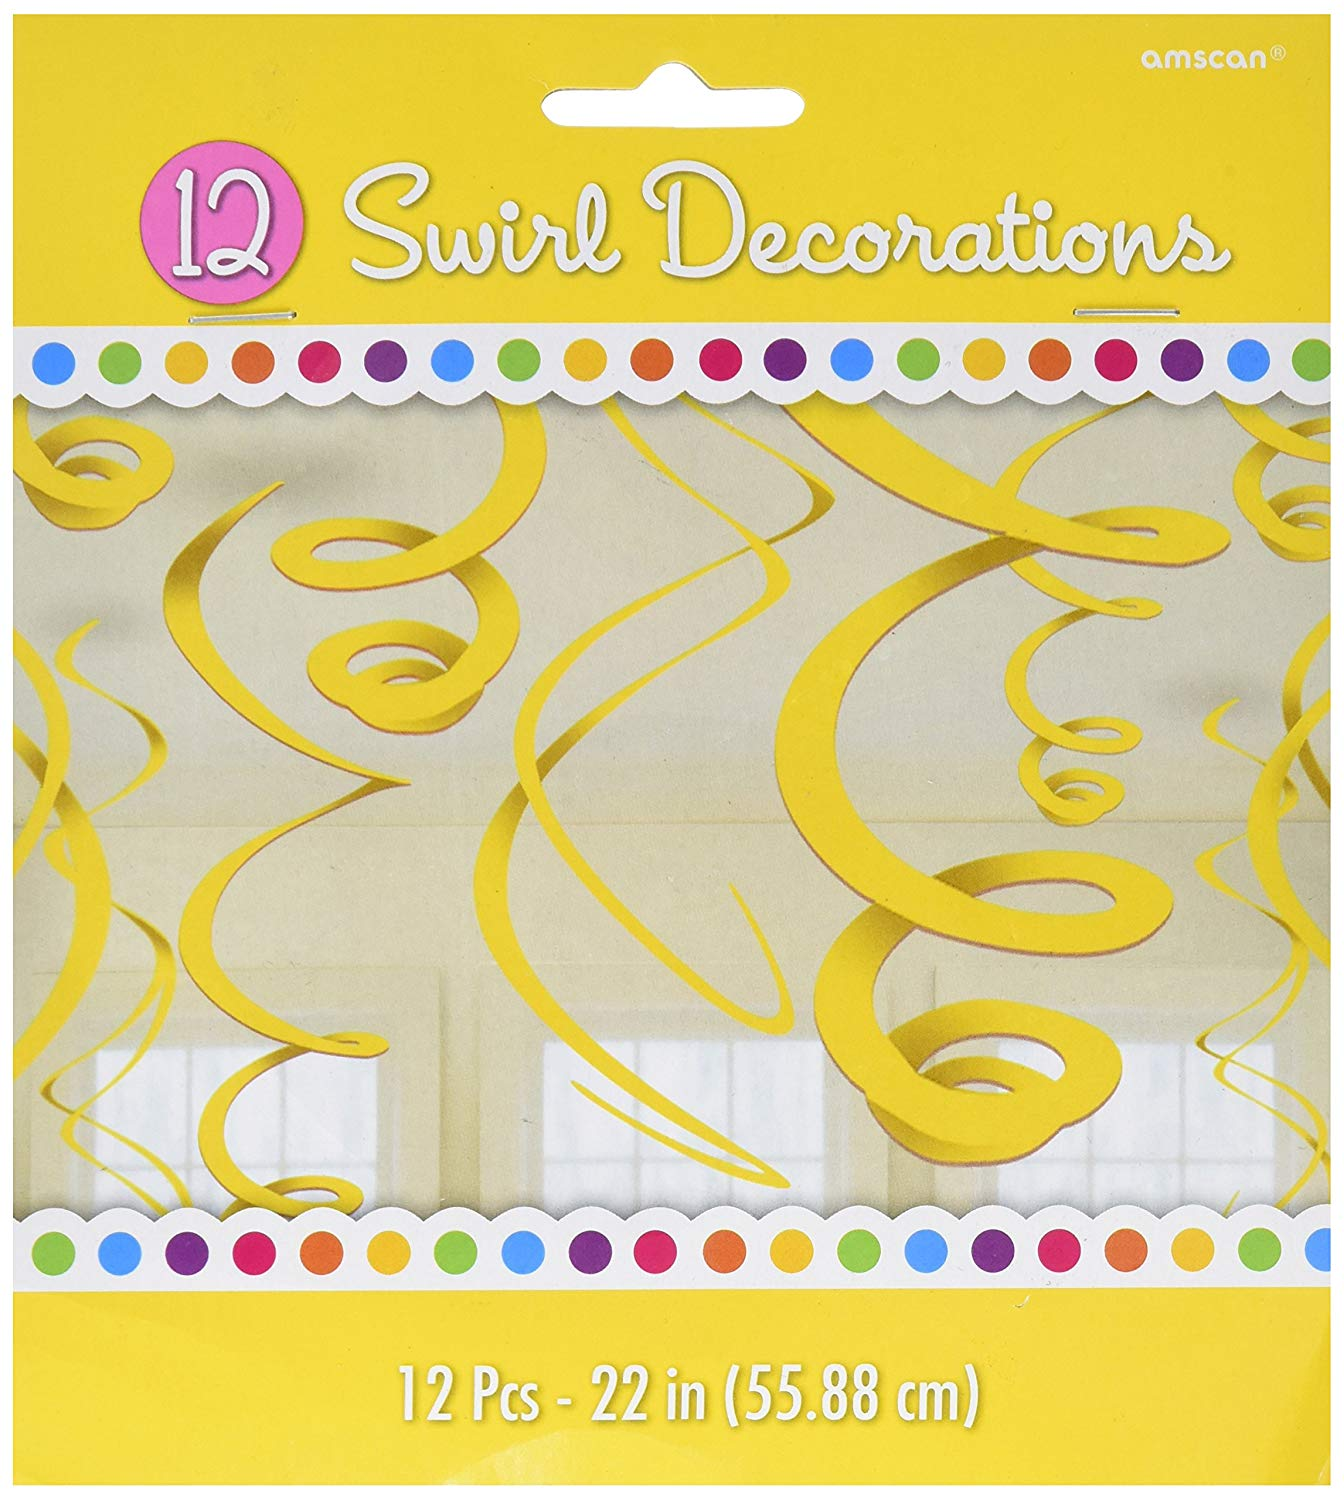 amscan 67055-09-55 55 cm Plastic Swirls Decorations